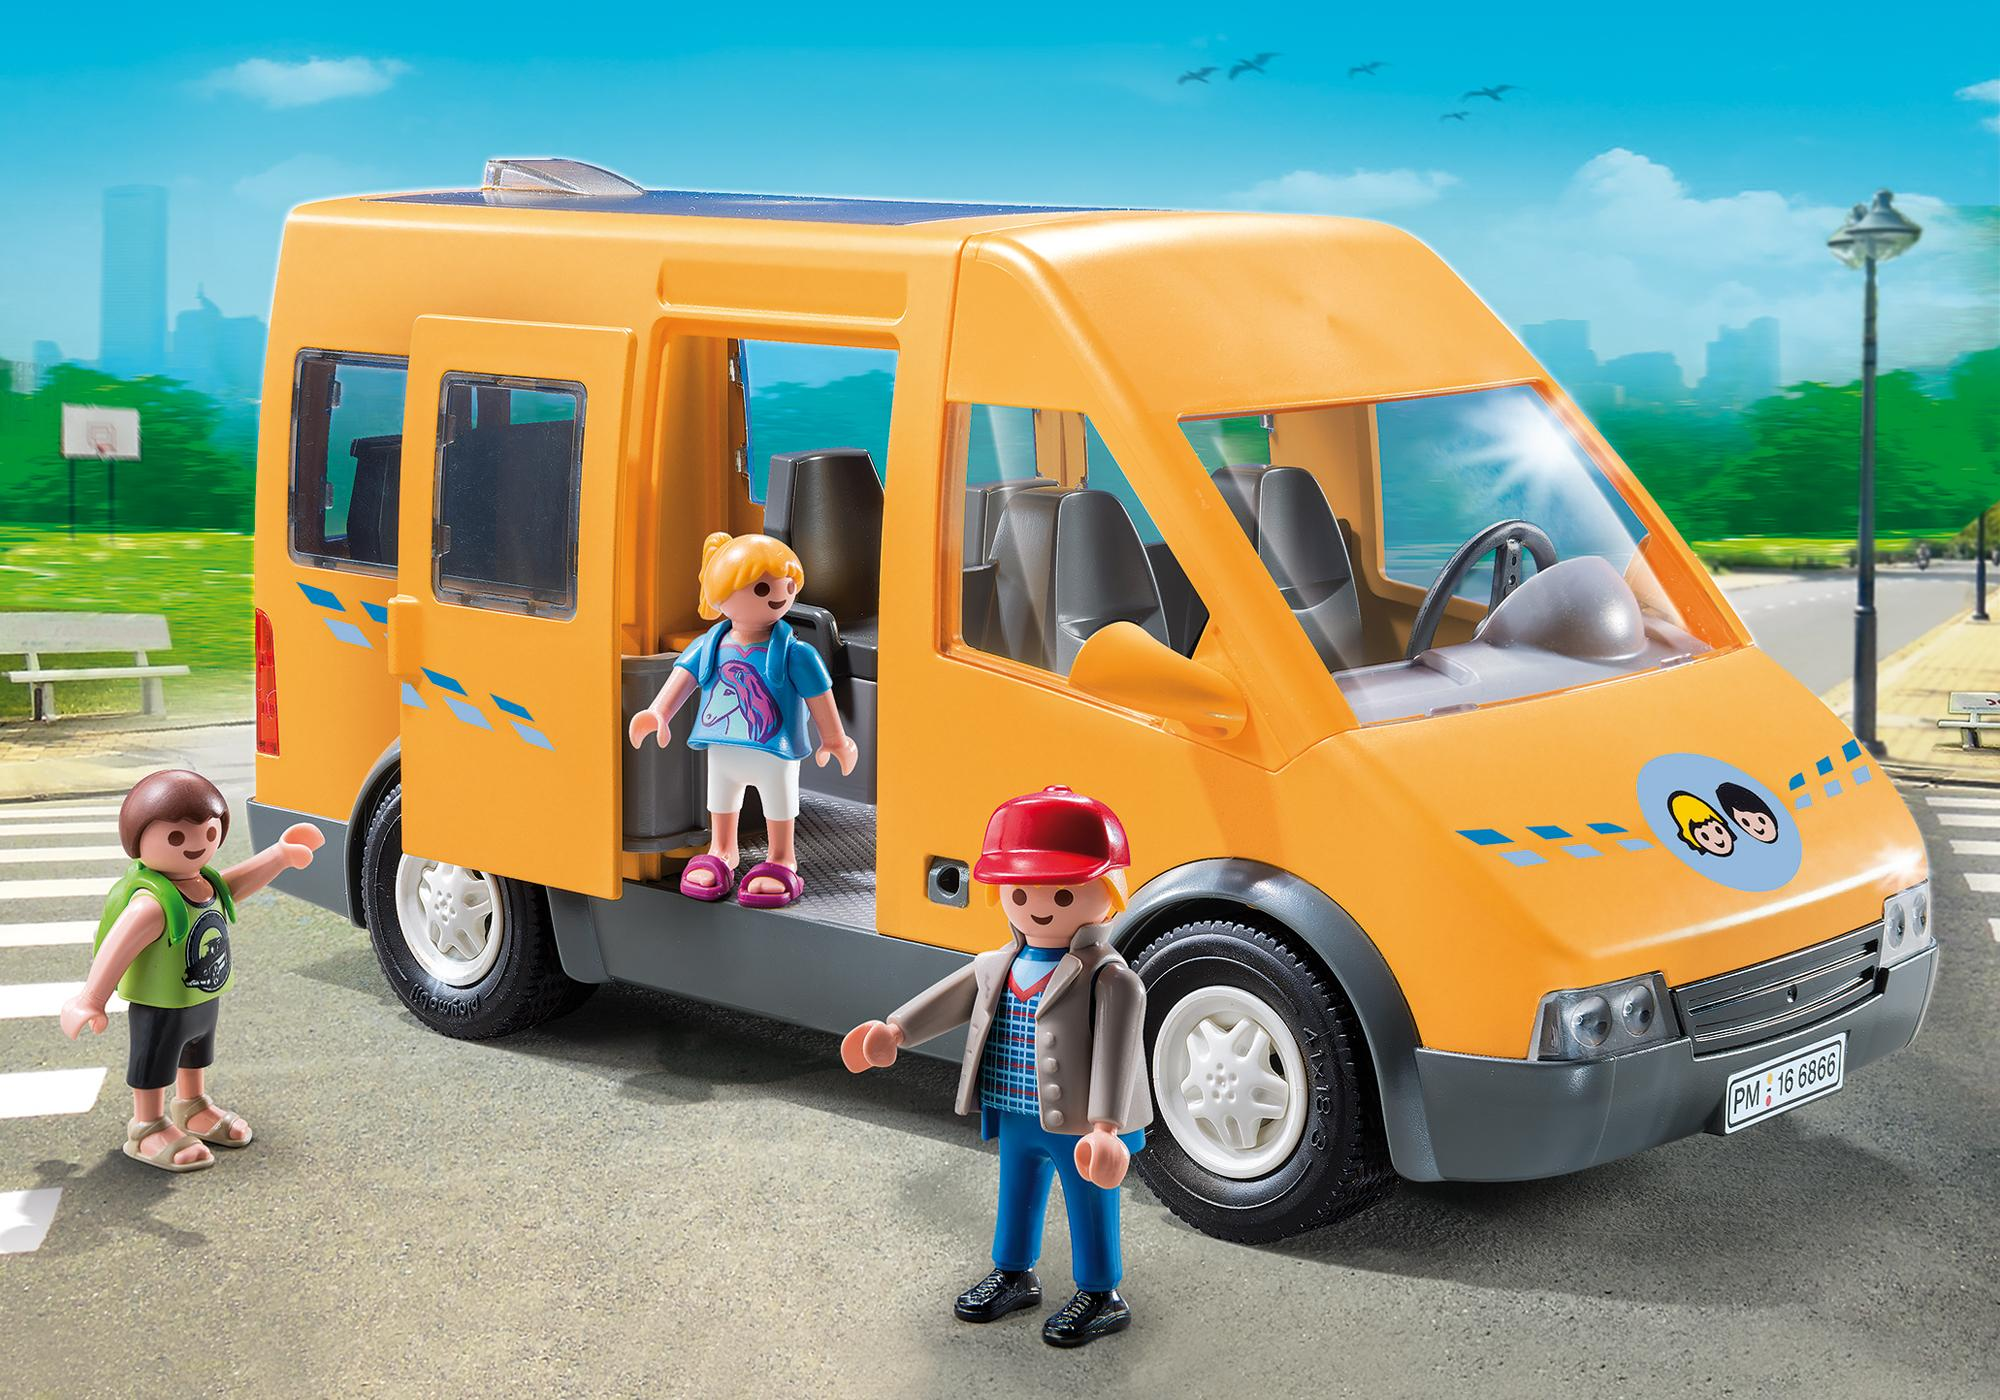 http://media.playmobil.com/i/playmobil/6866_product_detail